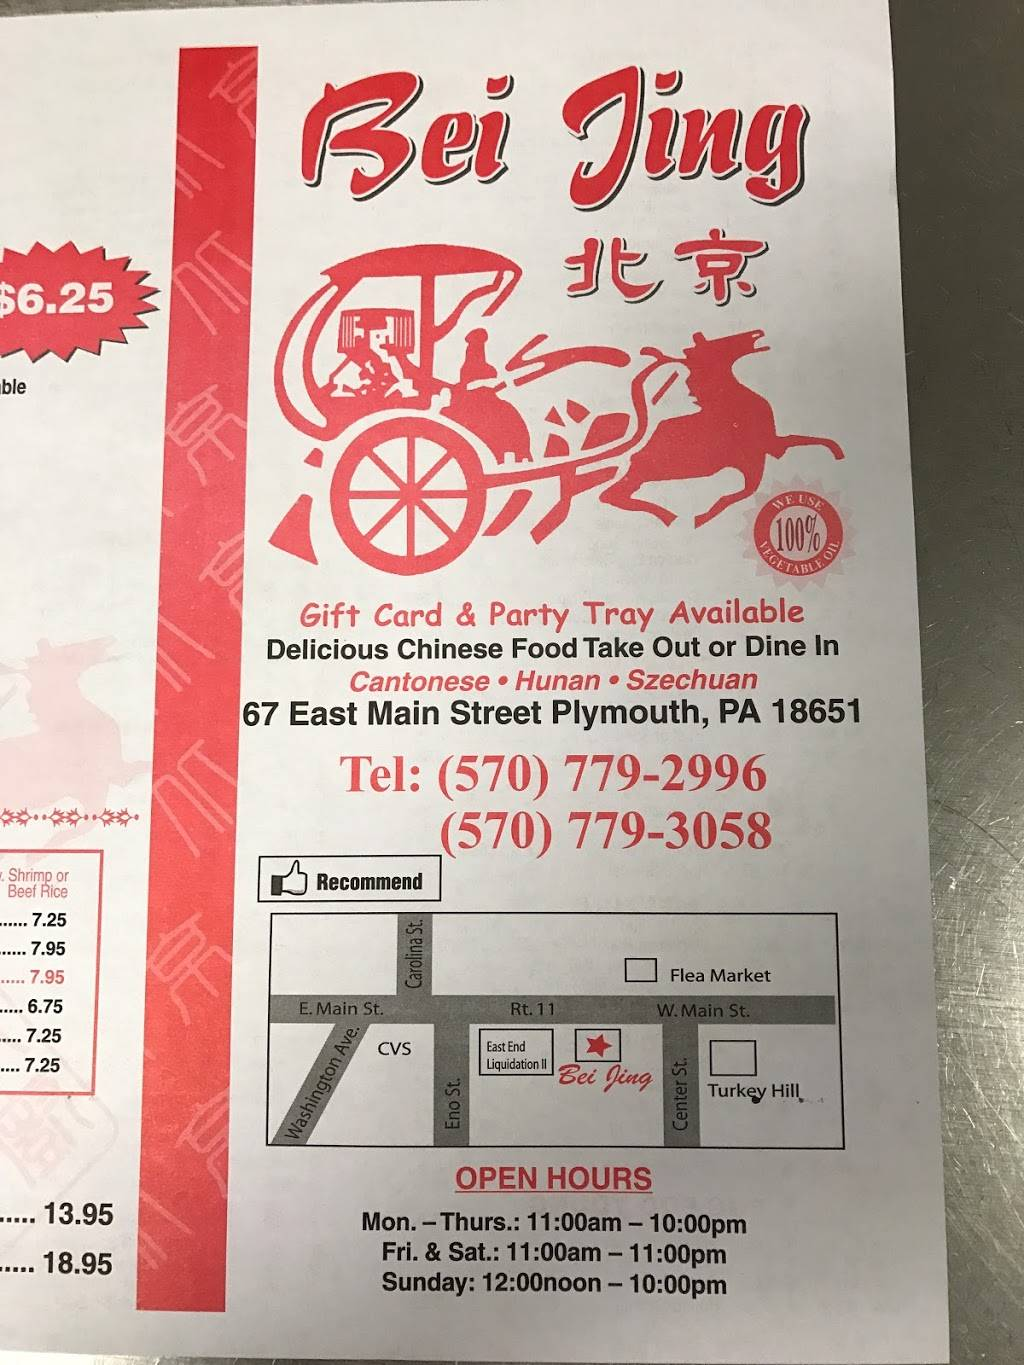 Beijing Chinese Food | restaurant | 3051, 67 E Main St, Plymouth, PA 18651, USA | 5707792996 OR +1 570-779-2996